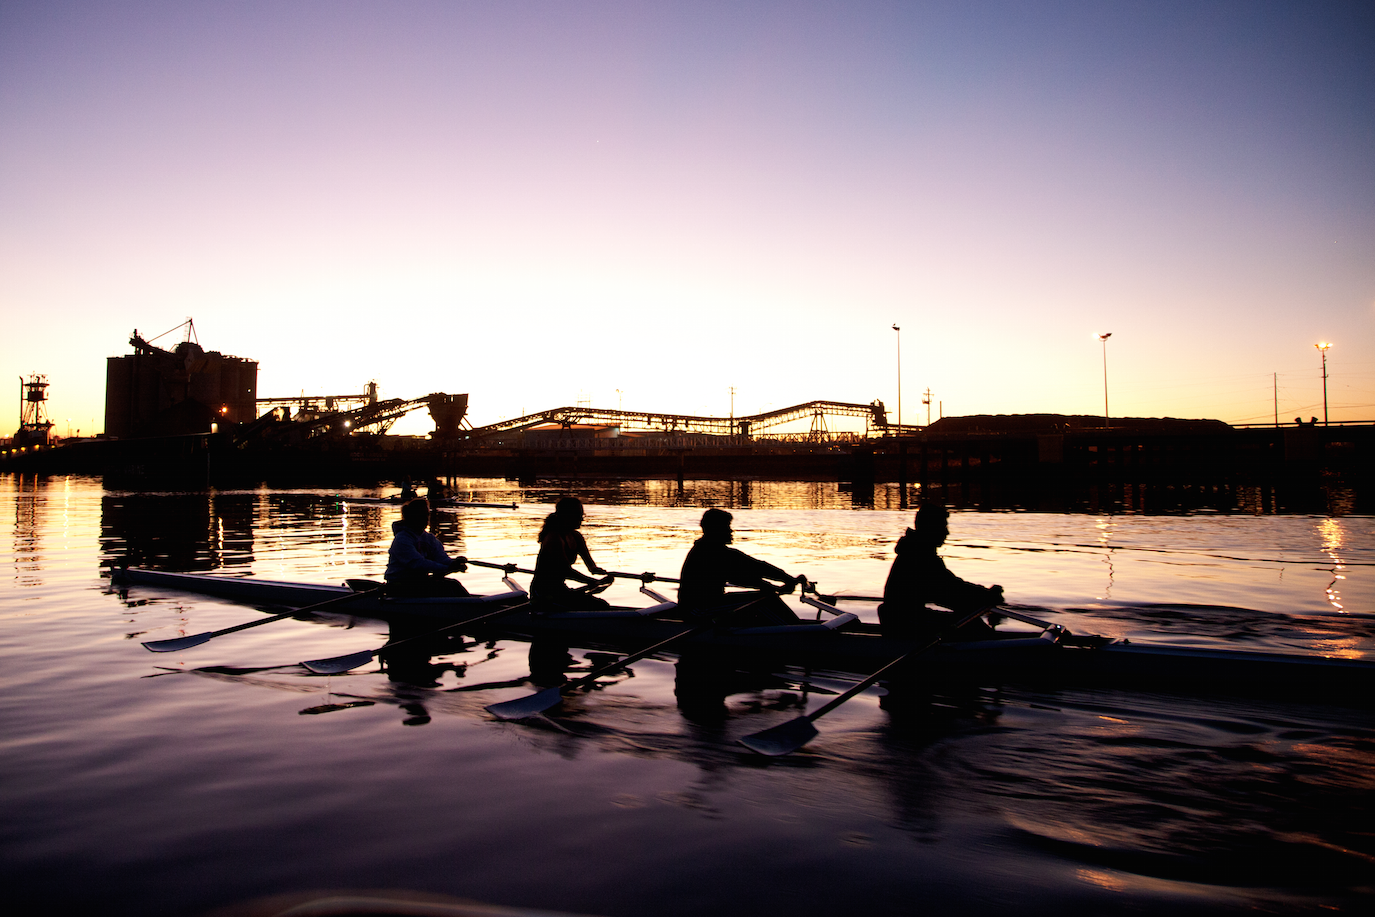 In the same boat: Sophomore Revan Aponso inherits his love for rowing